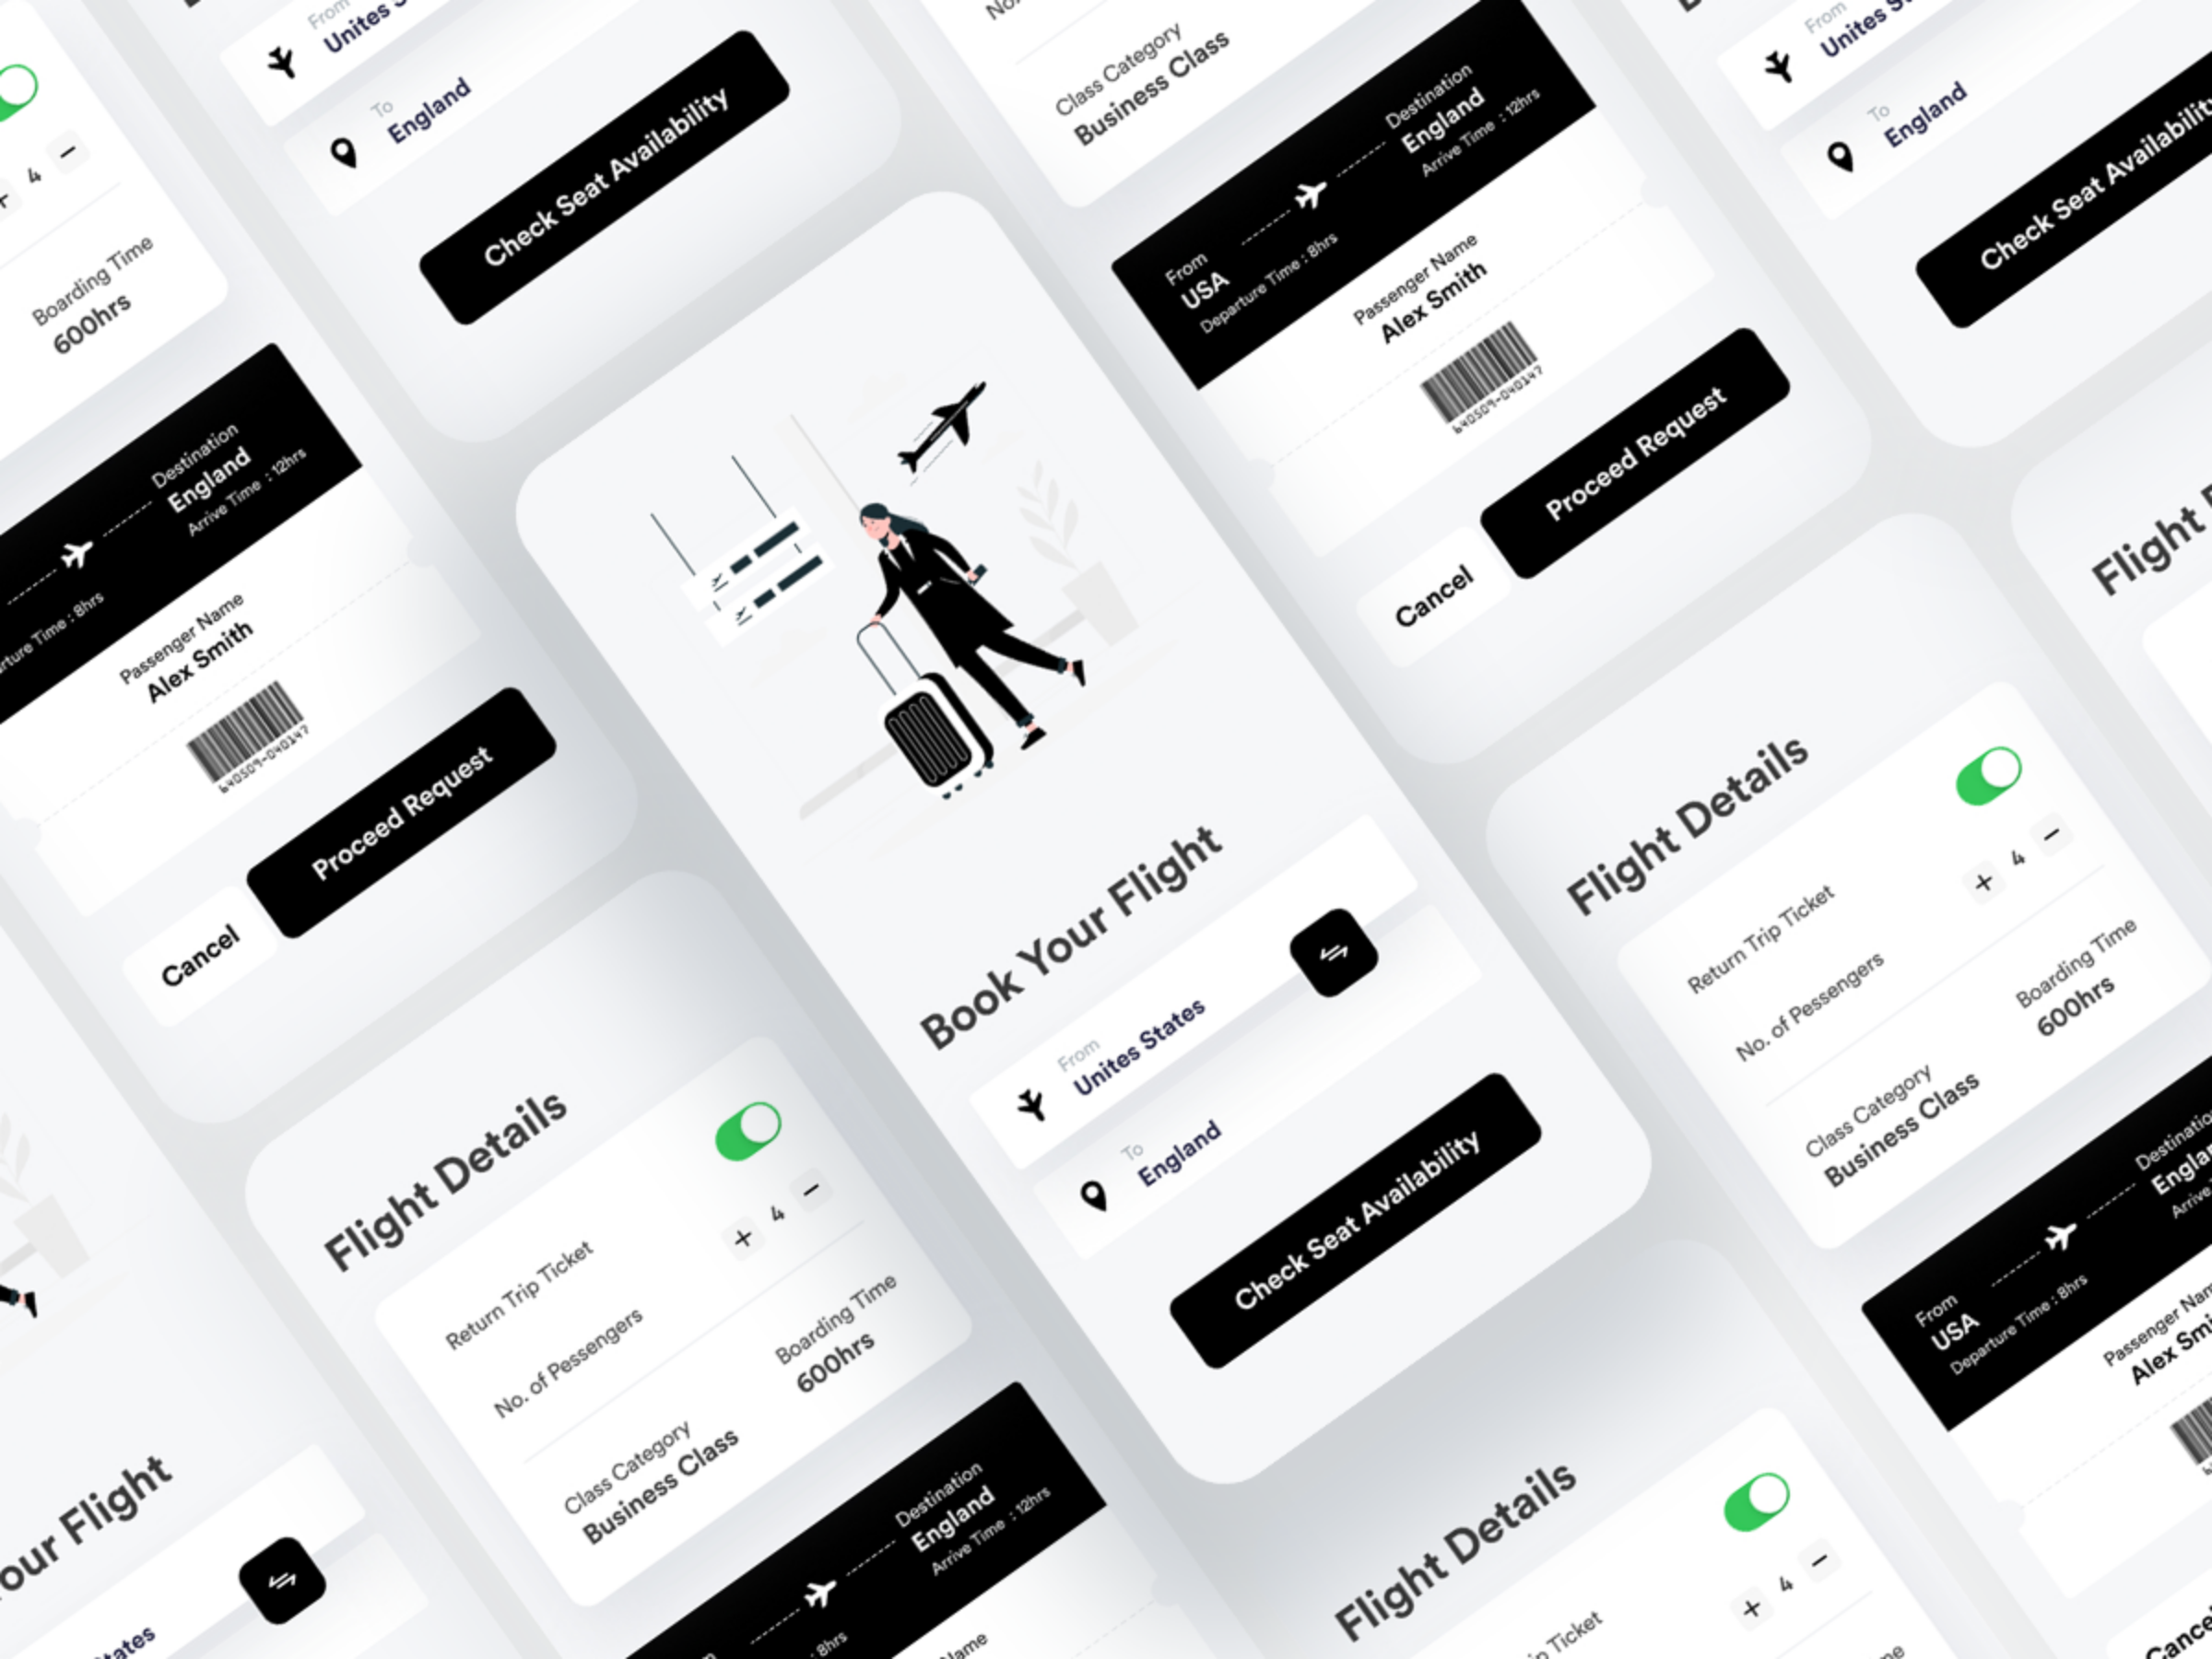 ronnystudiio_Flight Booking App UI Concept_Preview Image